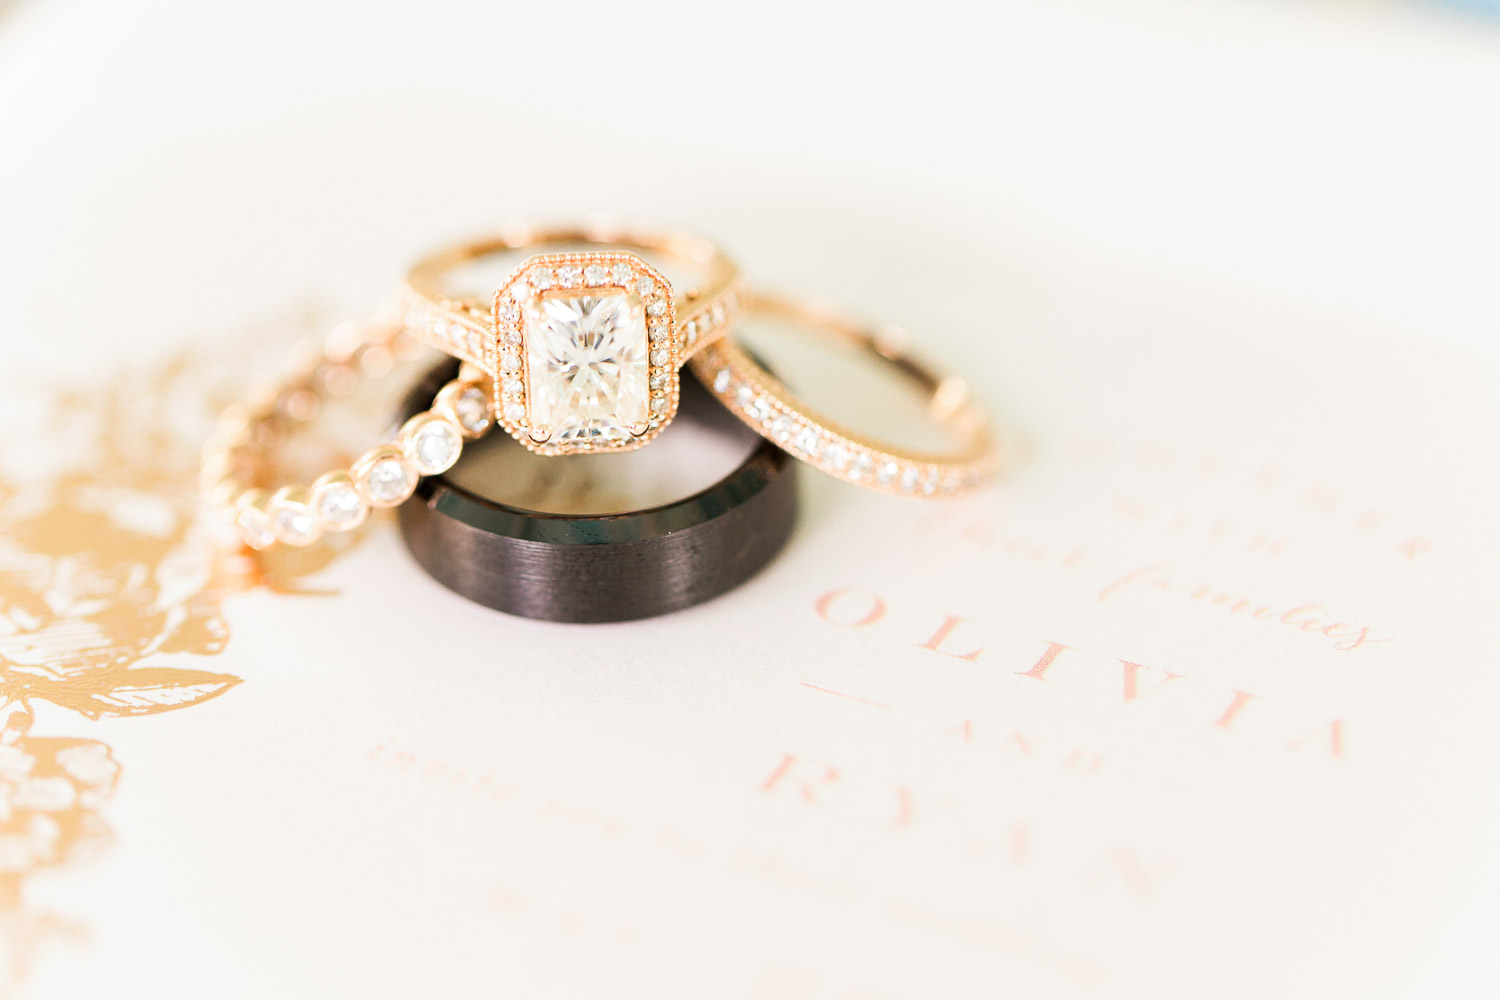 rose gold wedding rings on a wedding invitation